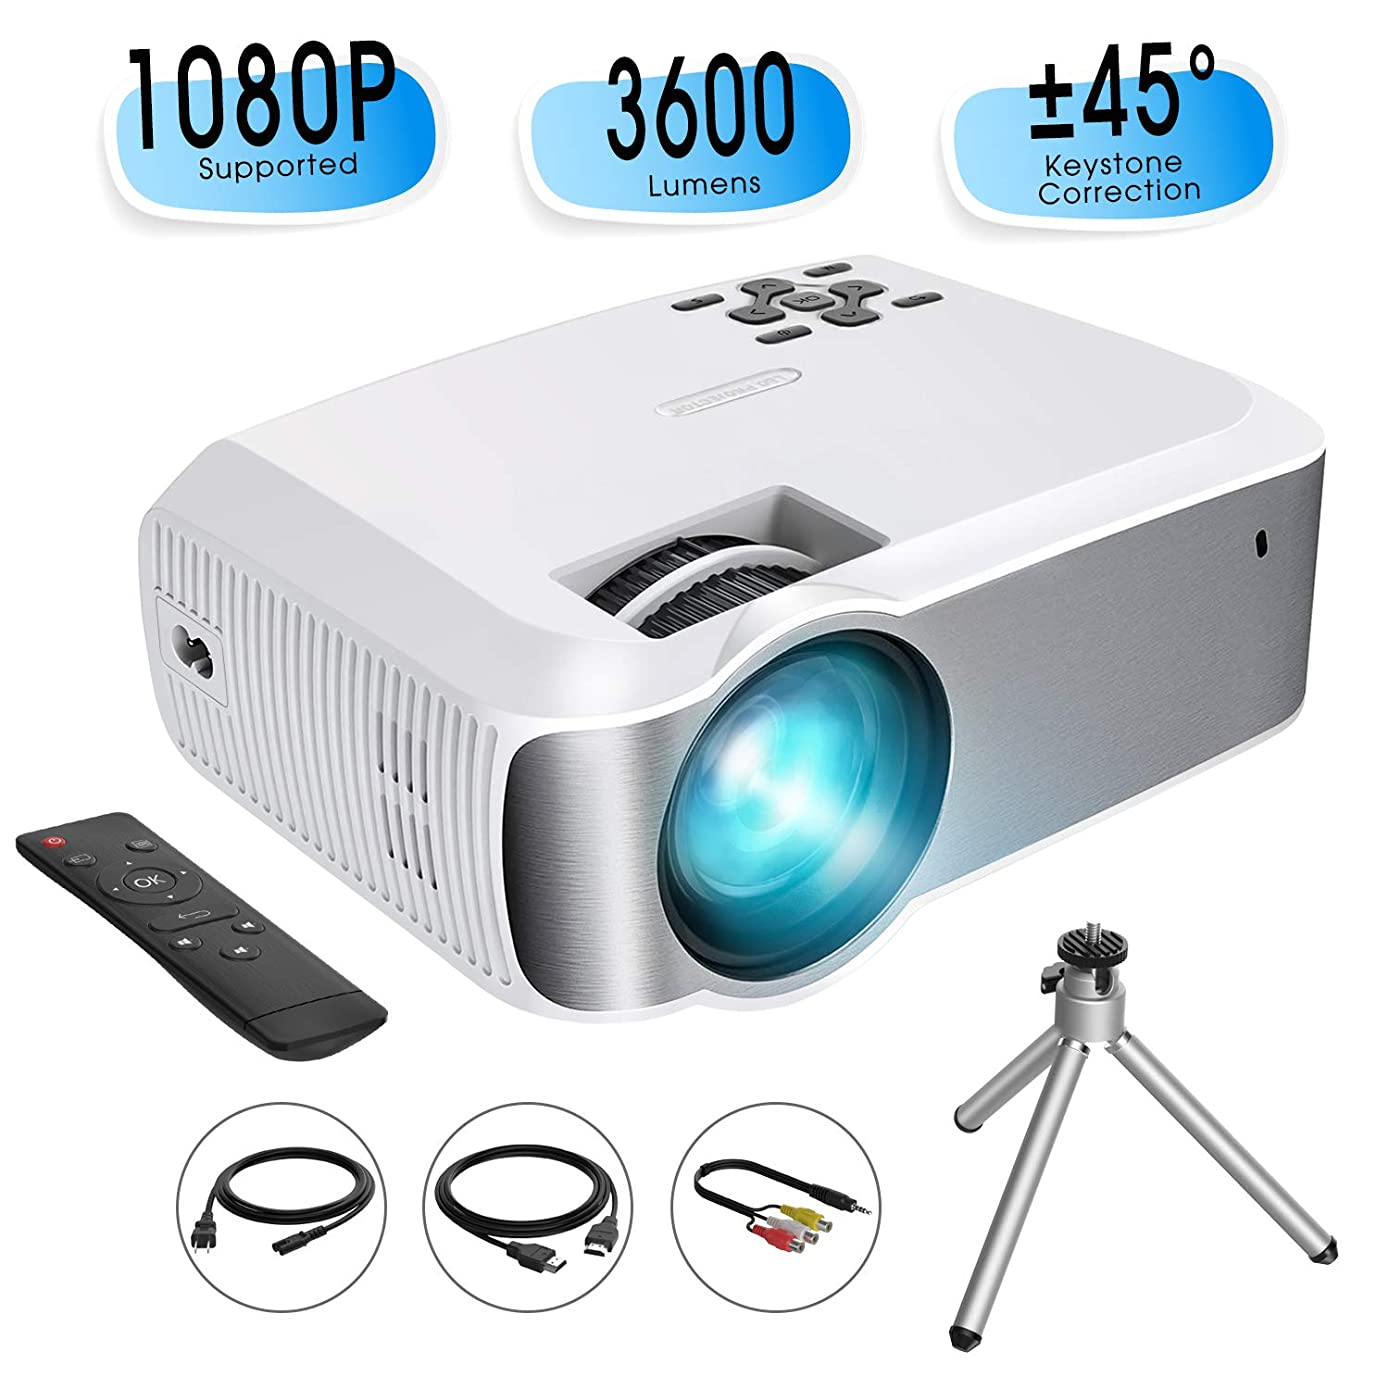 Mini Projector, TOPELEK Video Projector (2019 Upgraded) 1080P Supported with 3600 Lumens & ±45° Vertical Keystone Correction; LED Portable Projector with 2000:1 Contrast Ratio, 200